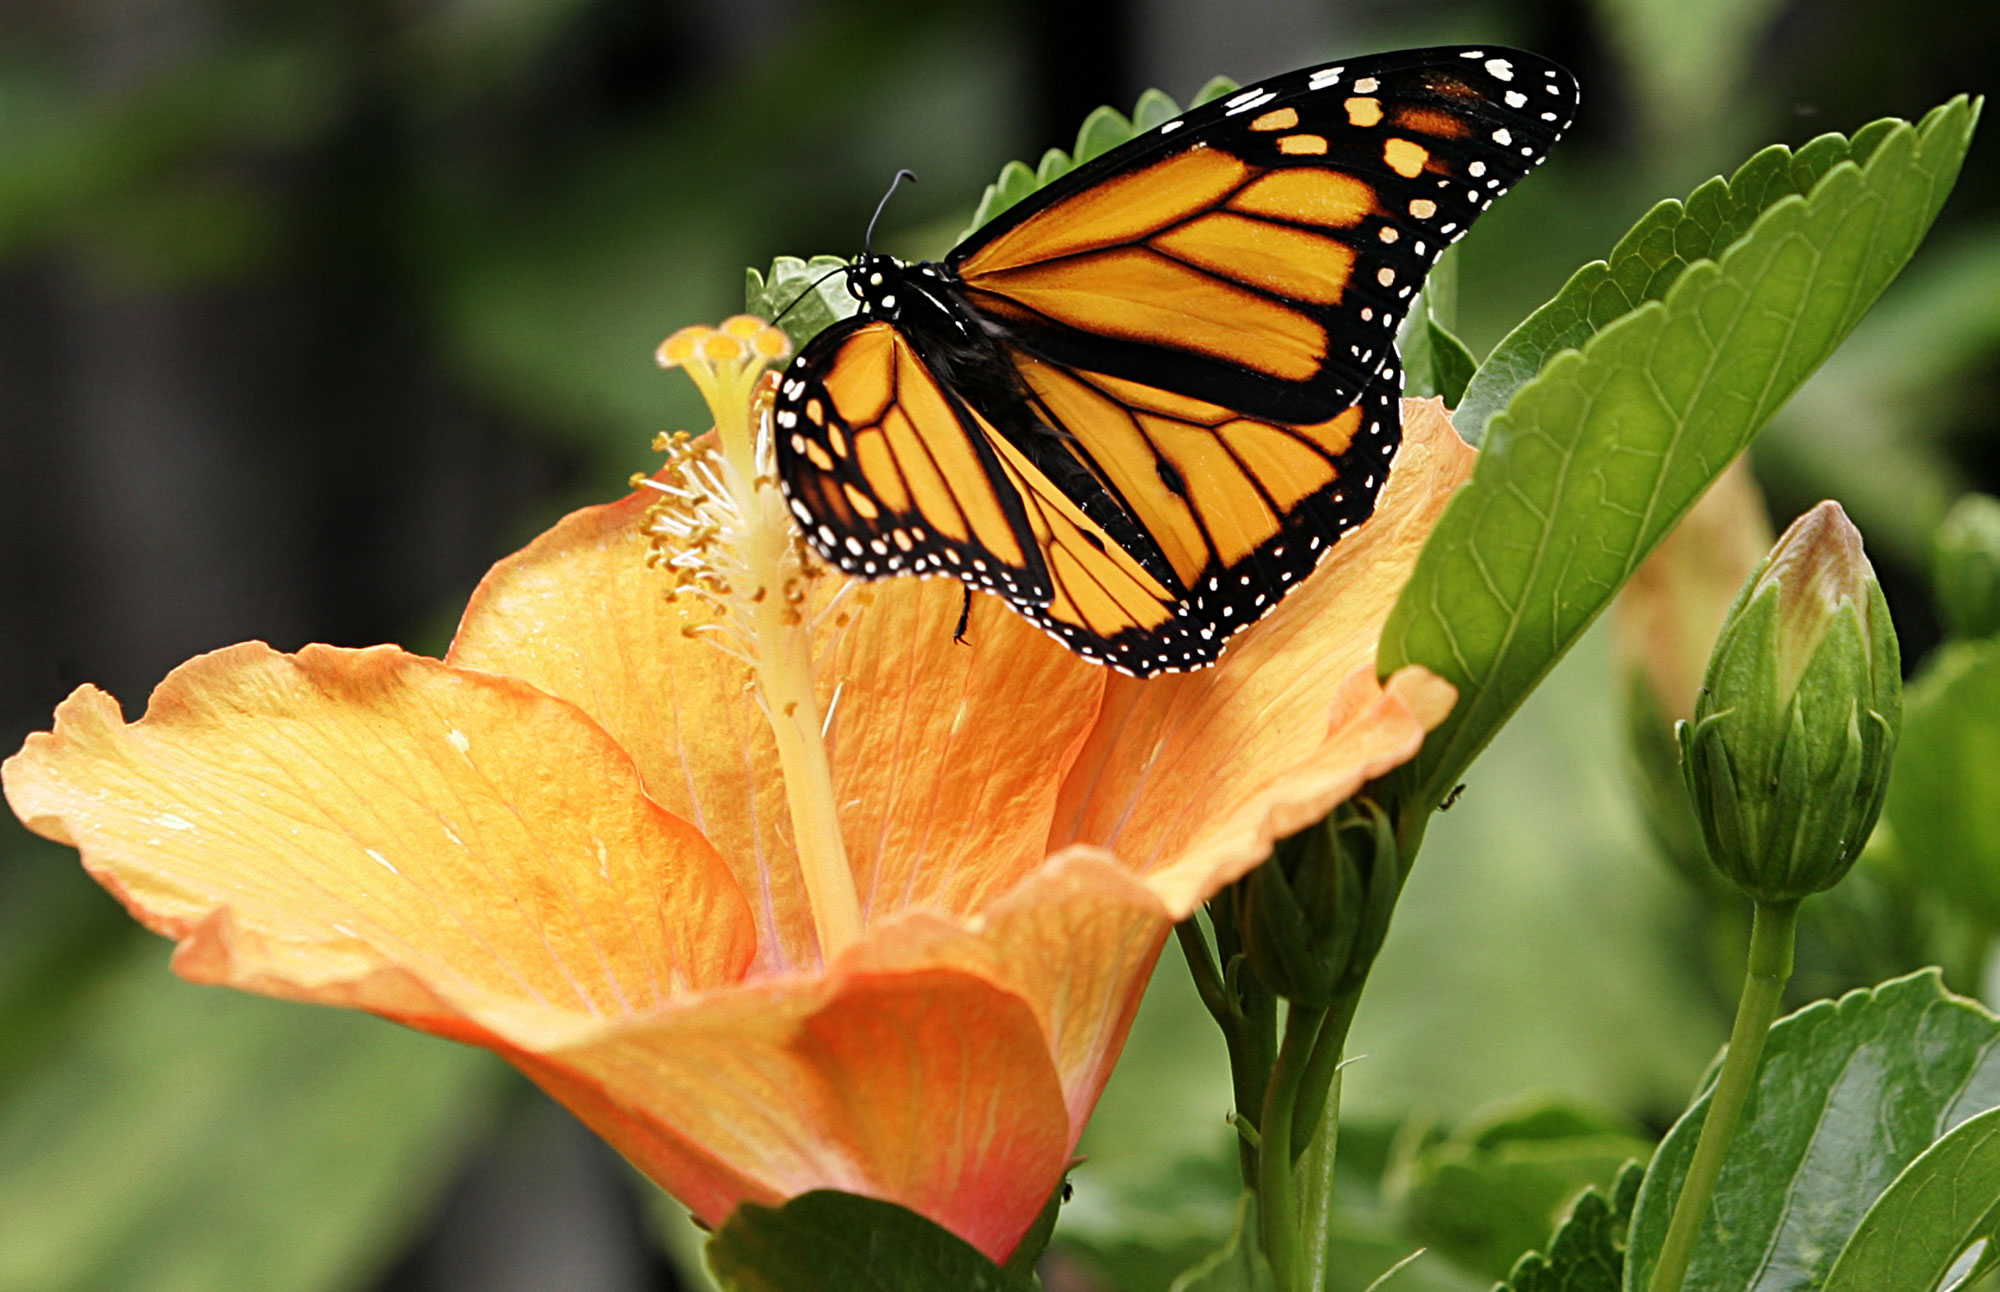 Hibiscus Flower with Butterfly